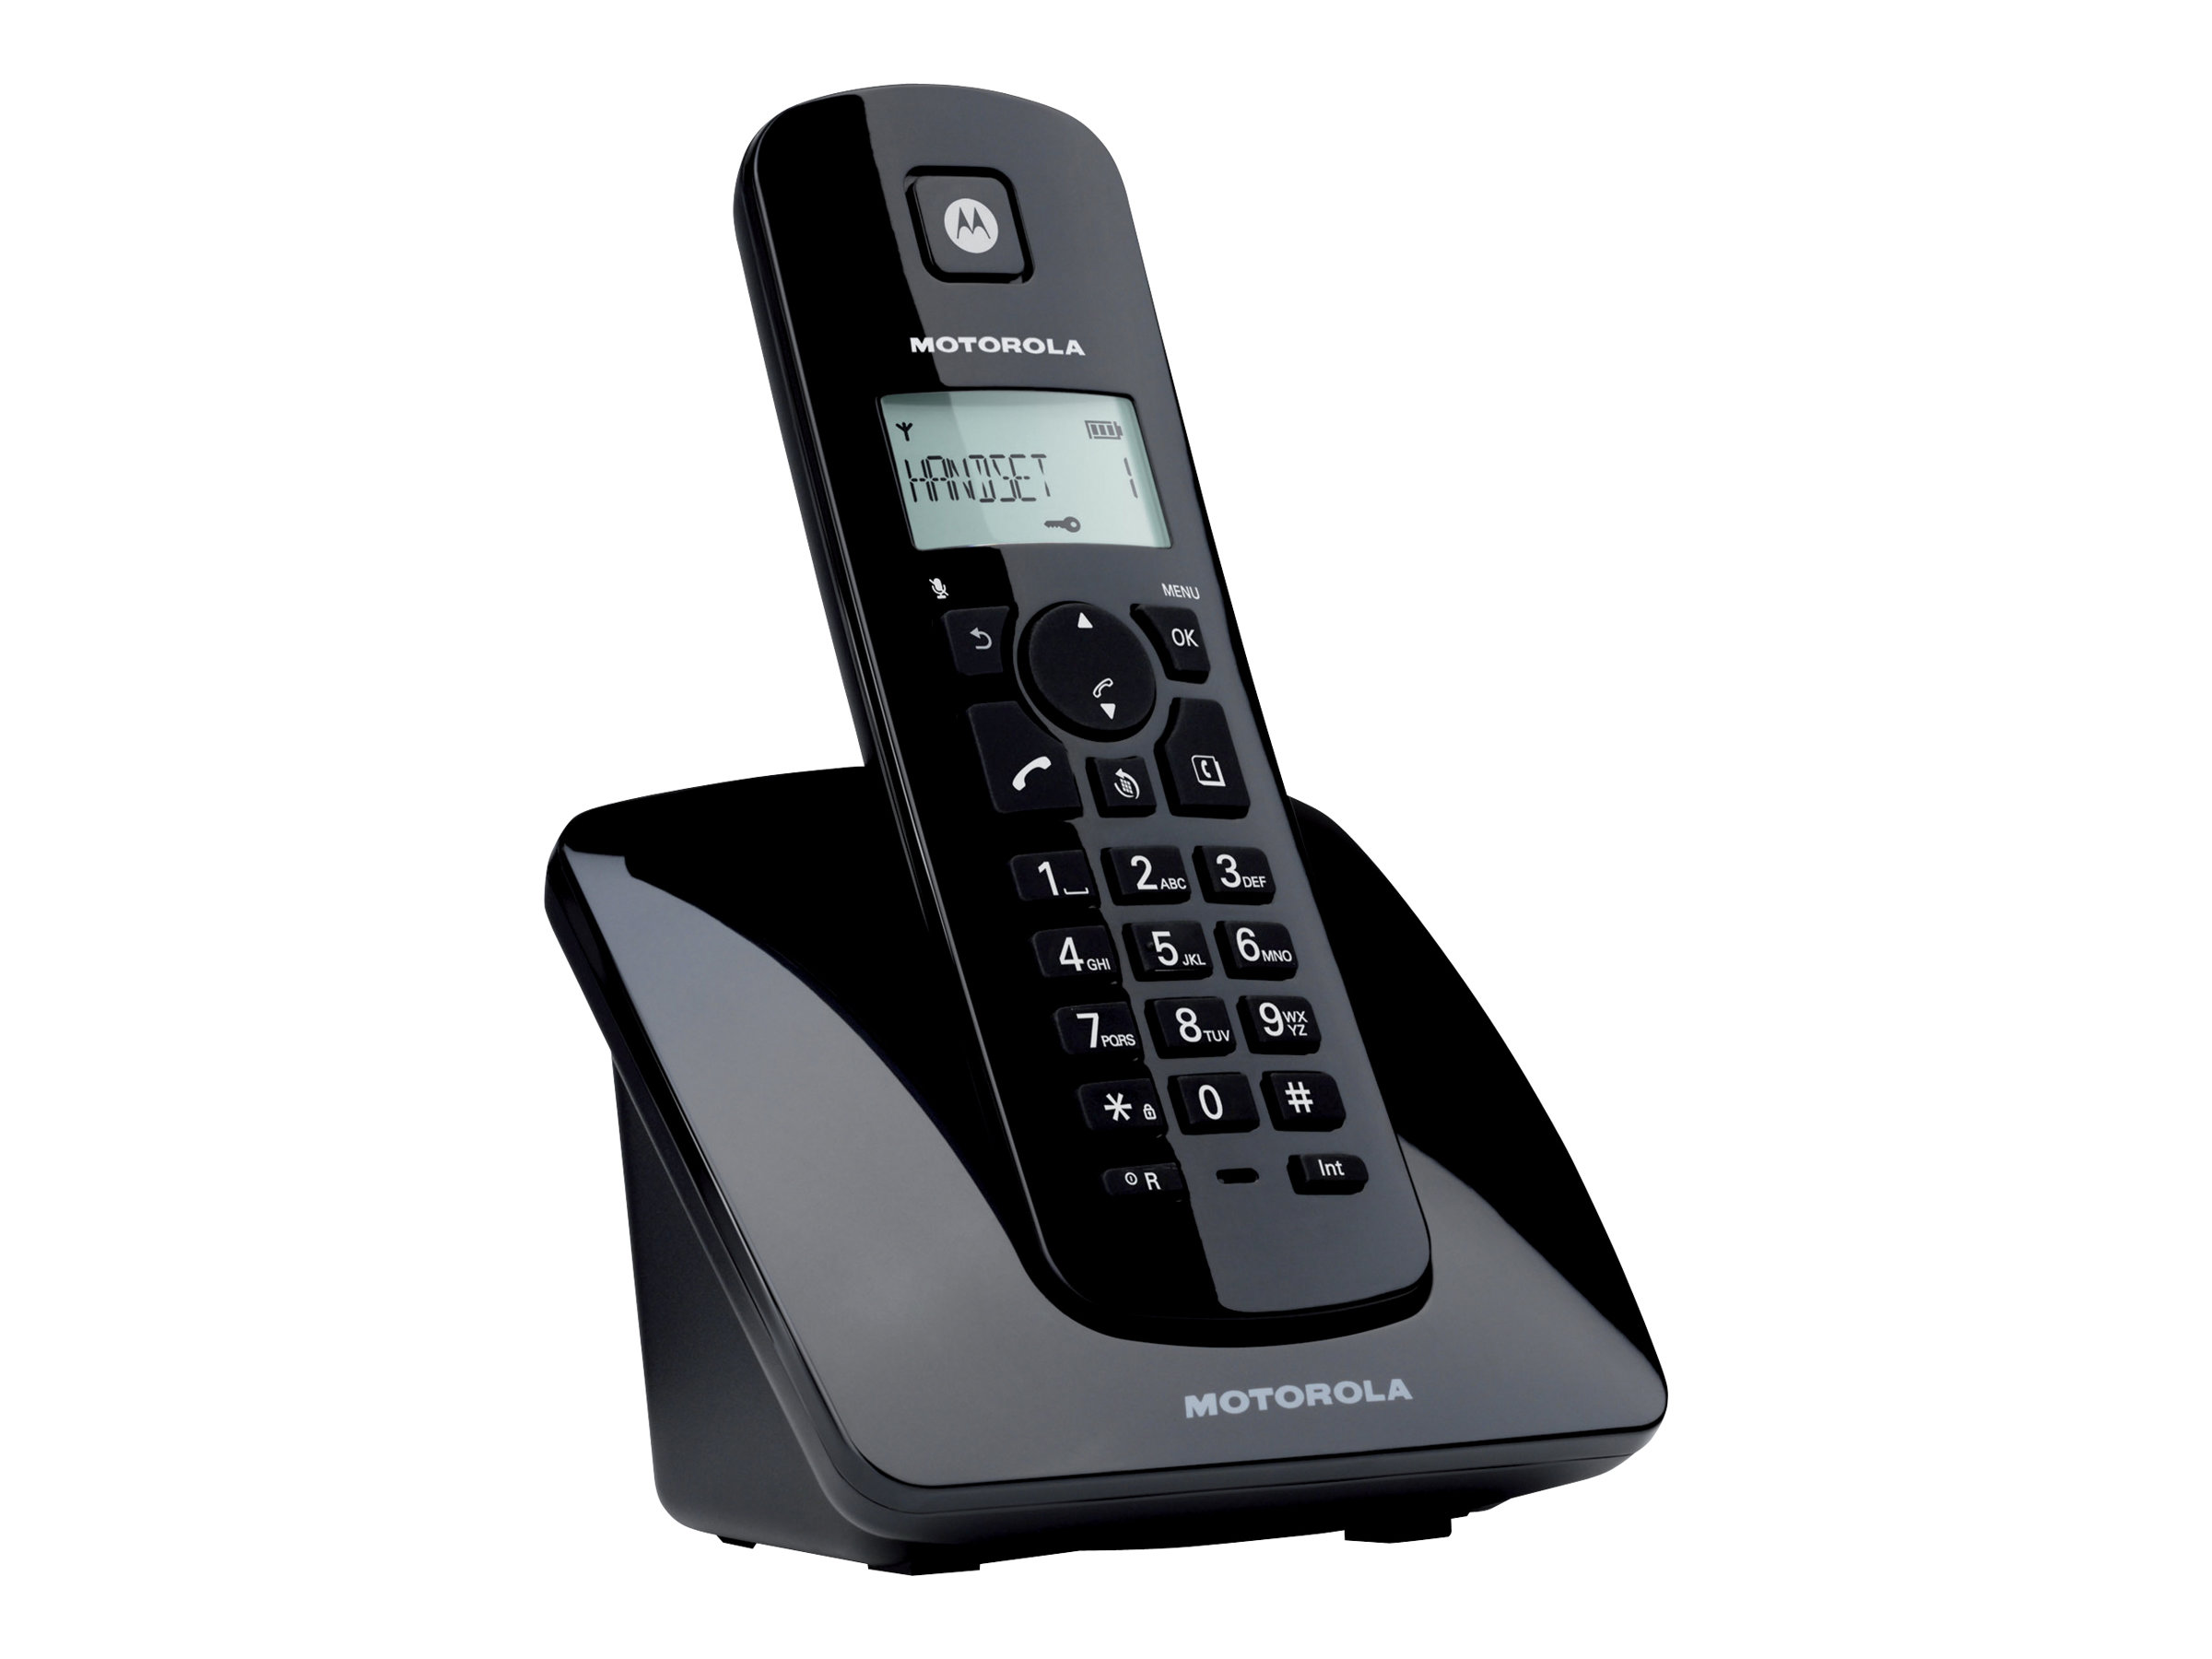 motorola c401 t l phone sans fil avec id d 39 appelant t l phonie fixe. Black Bedroom Furniture Sets. Home Design Ideas